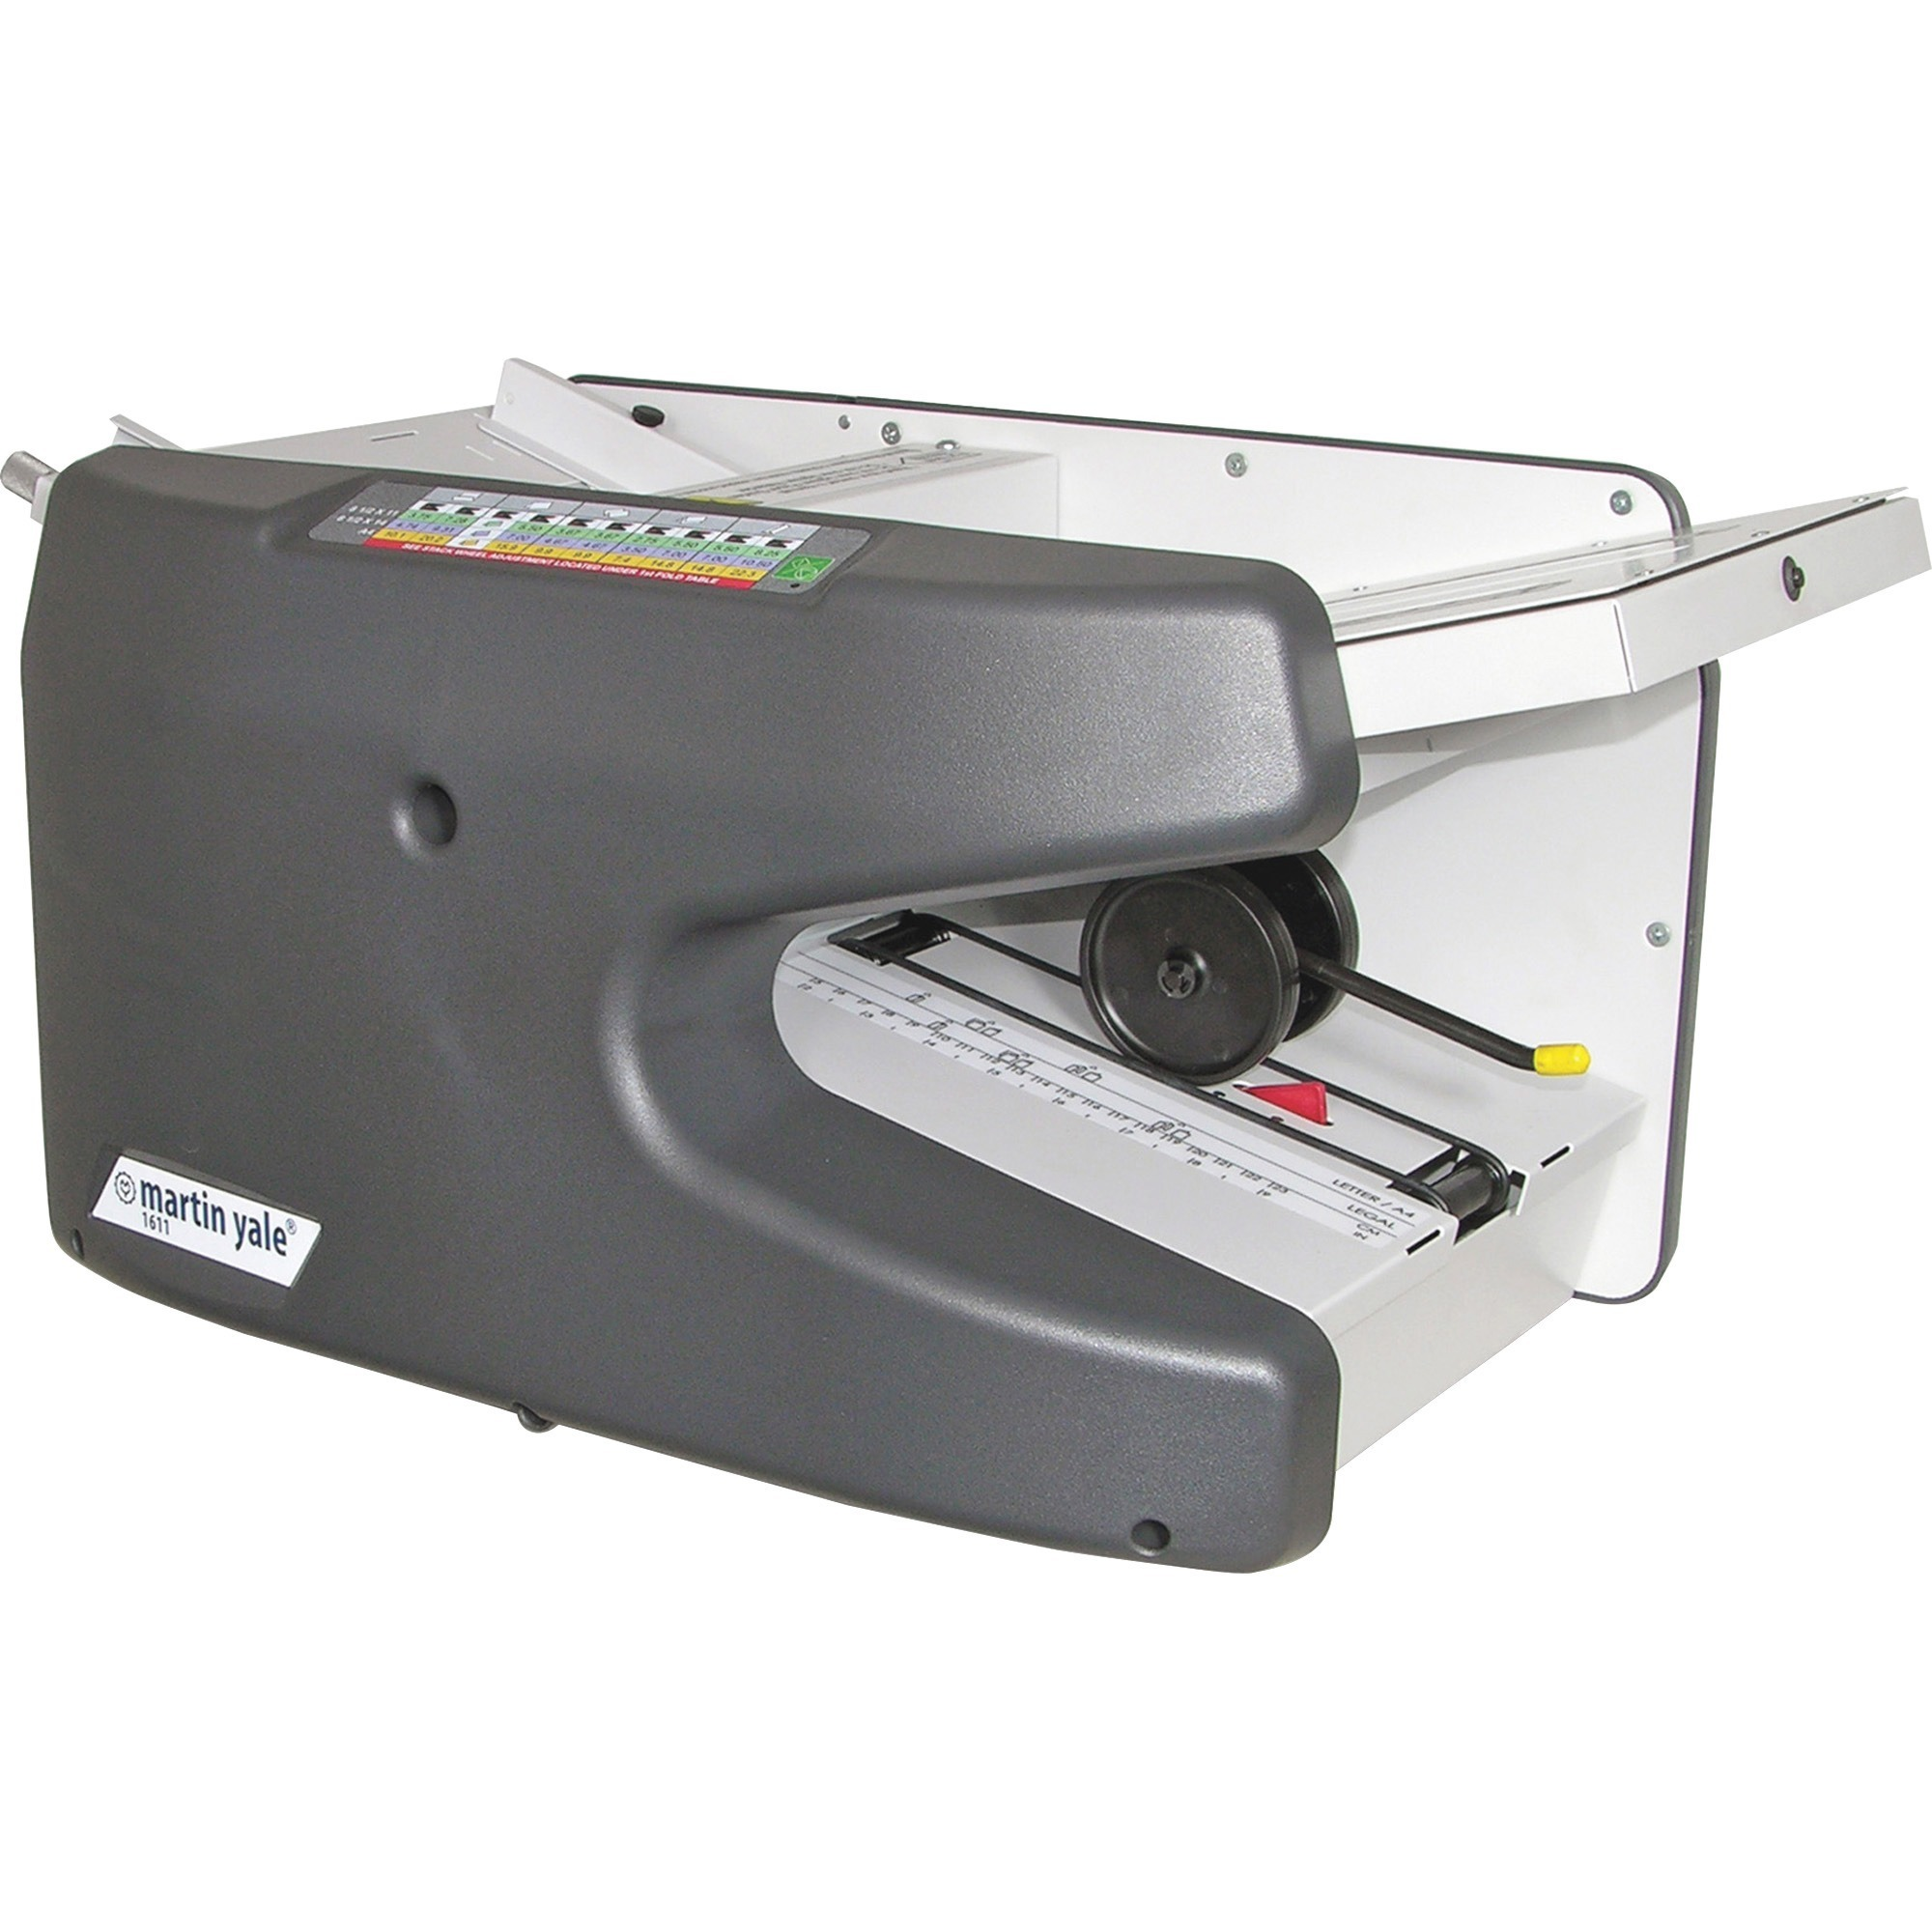 Martin Yale Premier 1611 Ease-Of-Use Autofolder